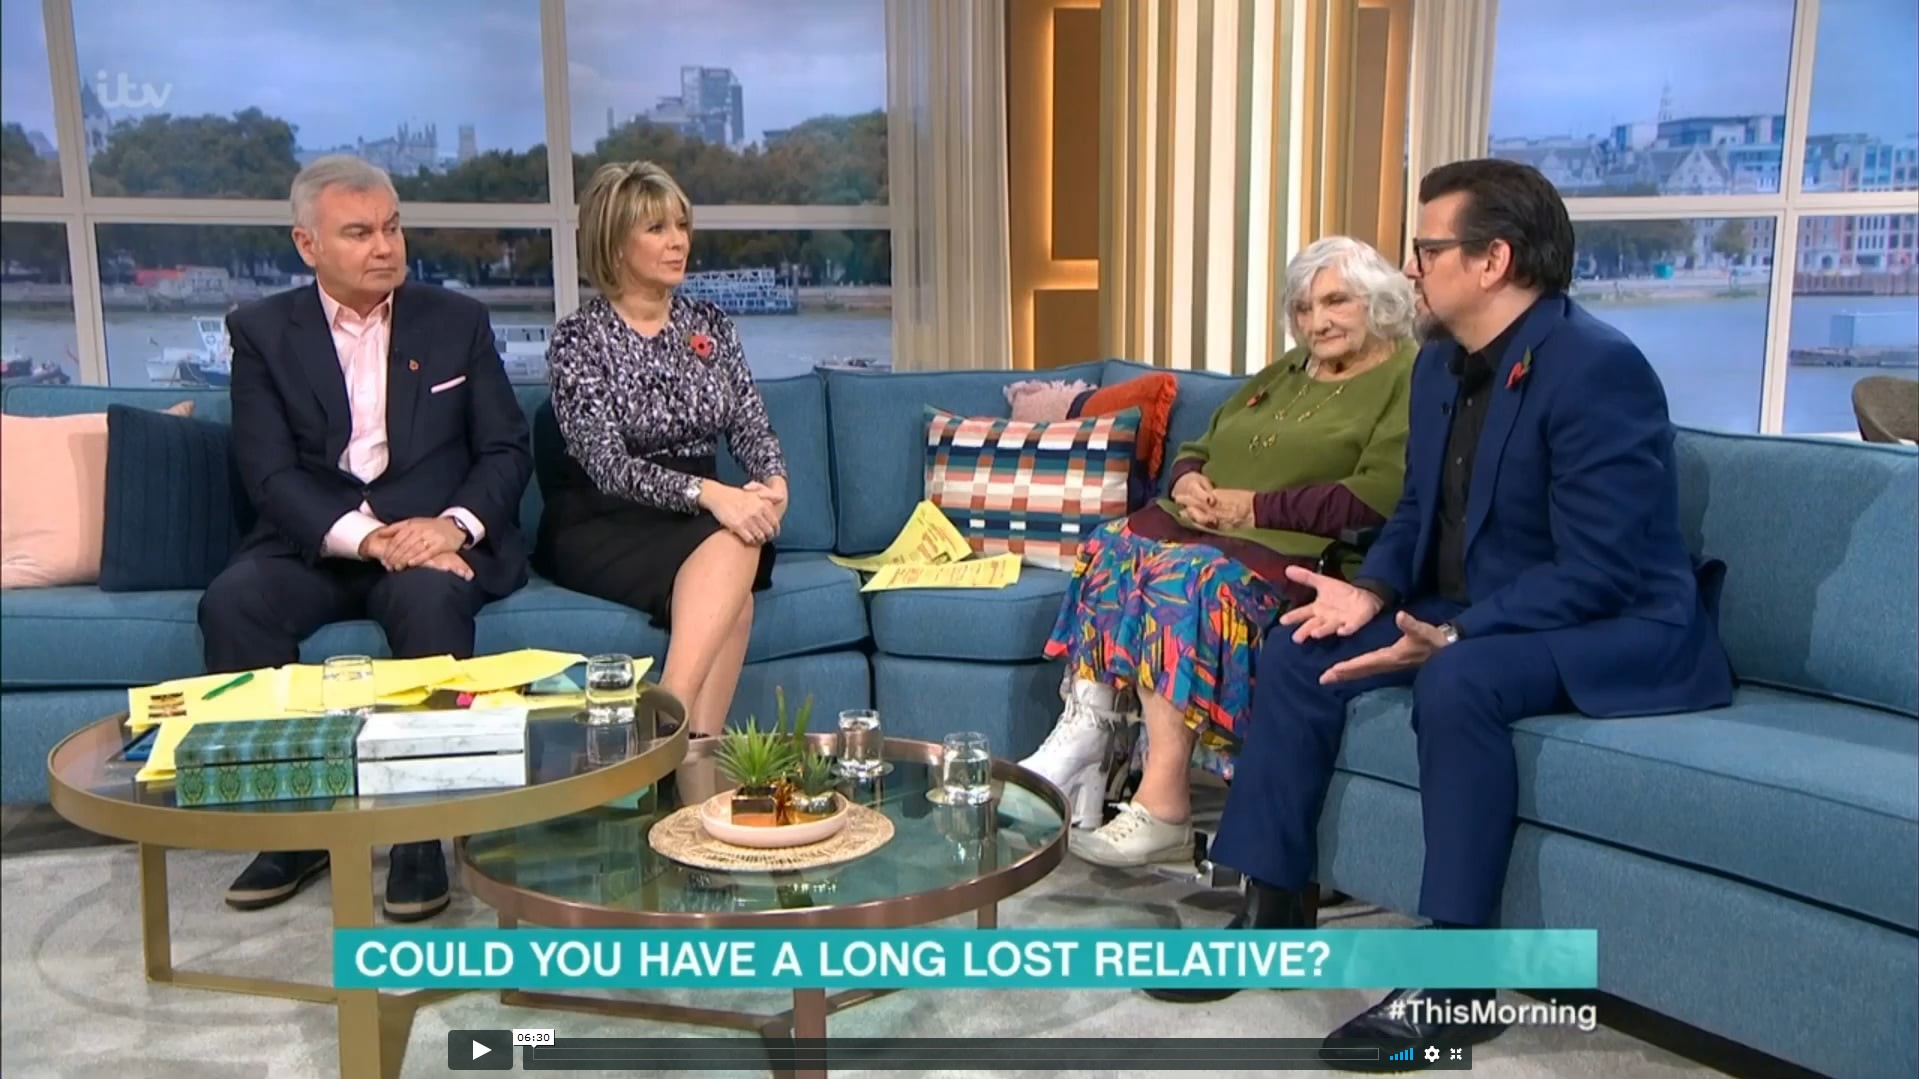 ITV - this morning 08-11-19